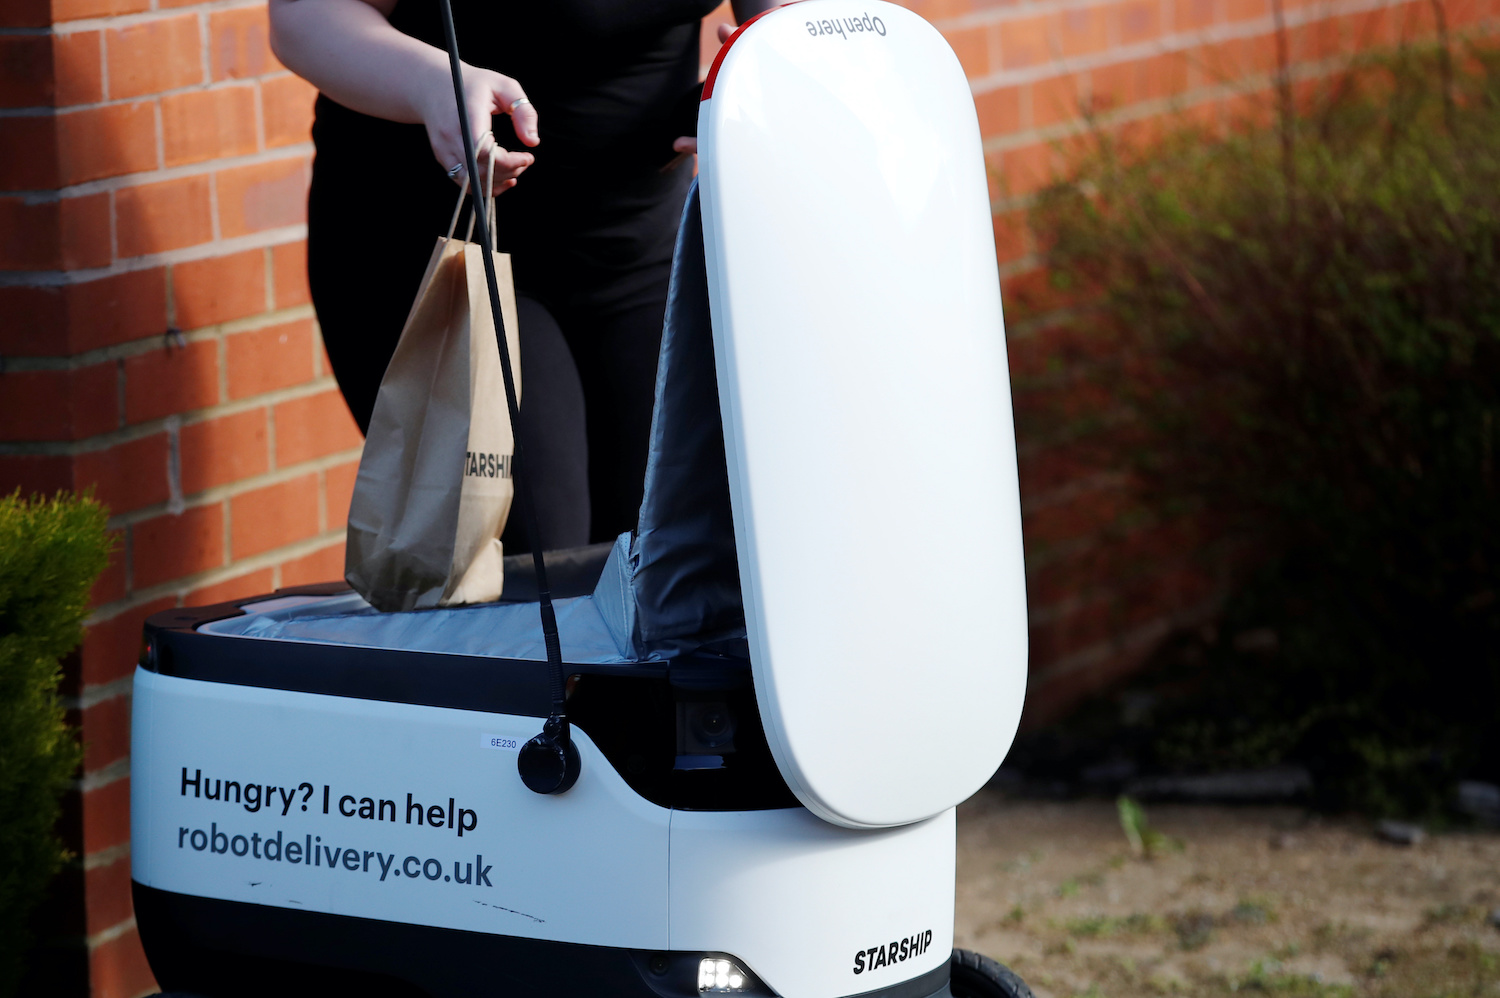 A customer takes a bag from a Starship autonomous delivery robot in Milton Keynes, England. (Photo by Reuters)